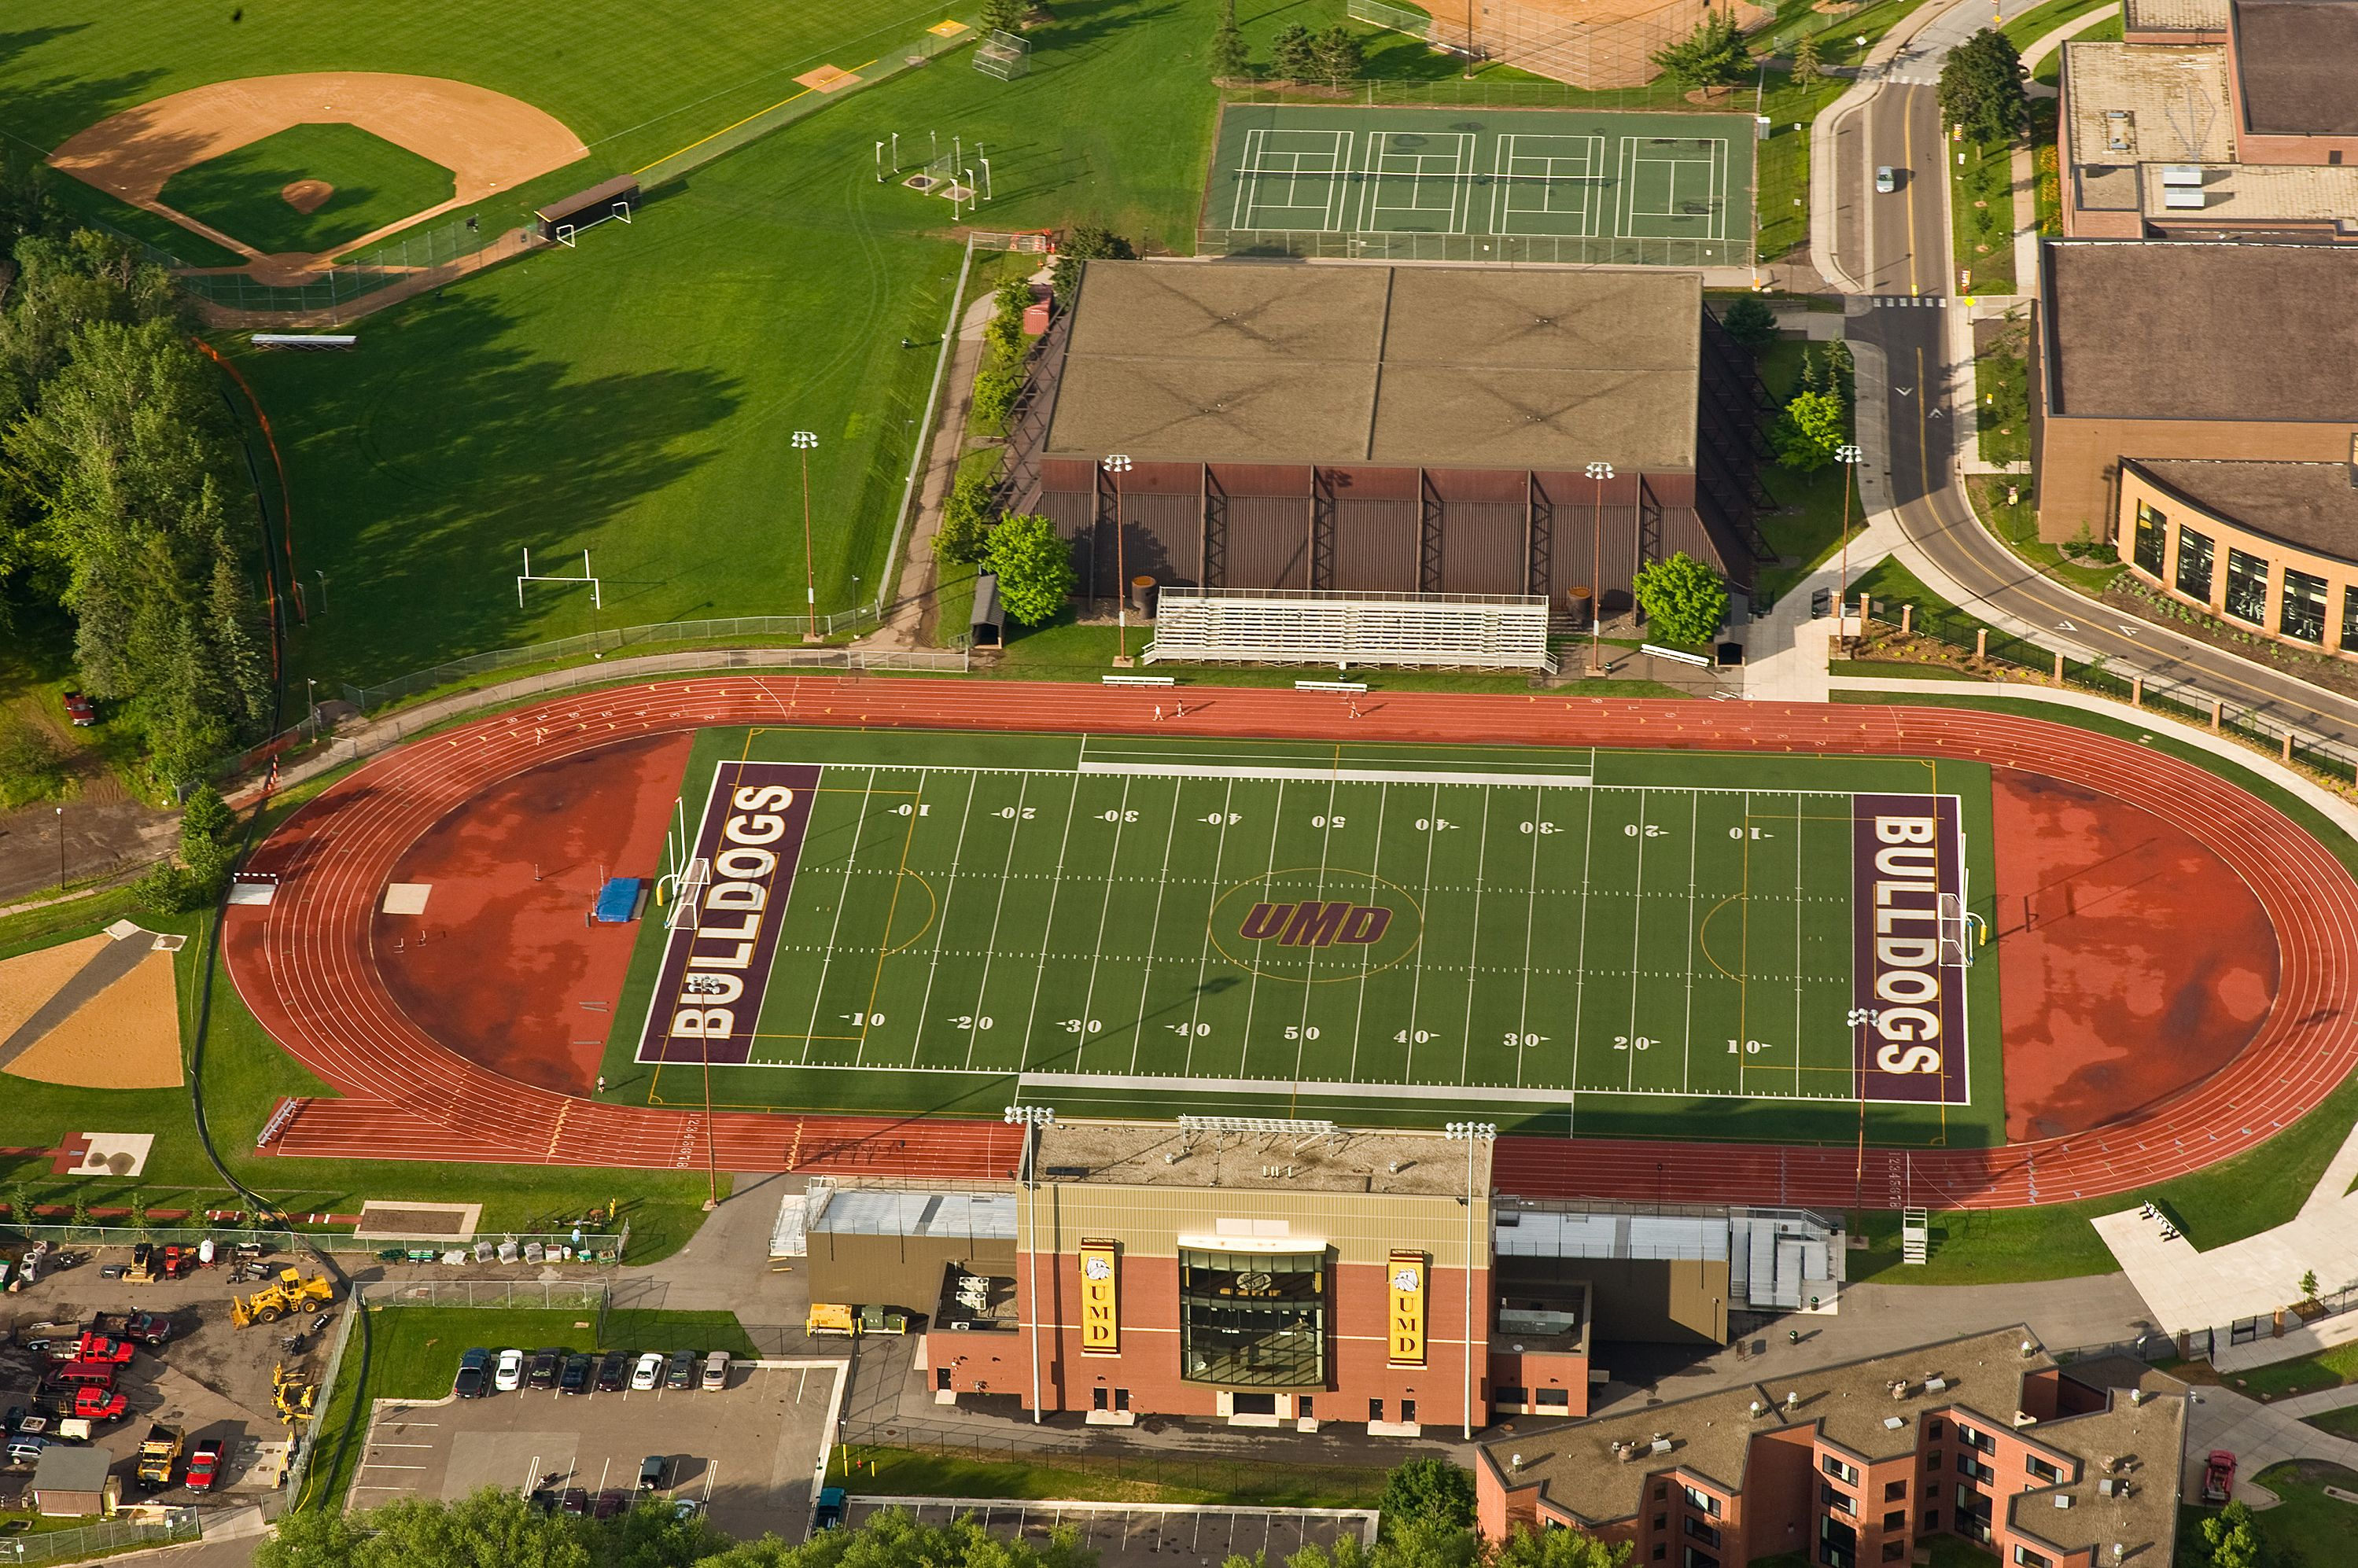 James S Malosky Stadium Aerial View Named After Legendary